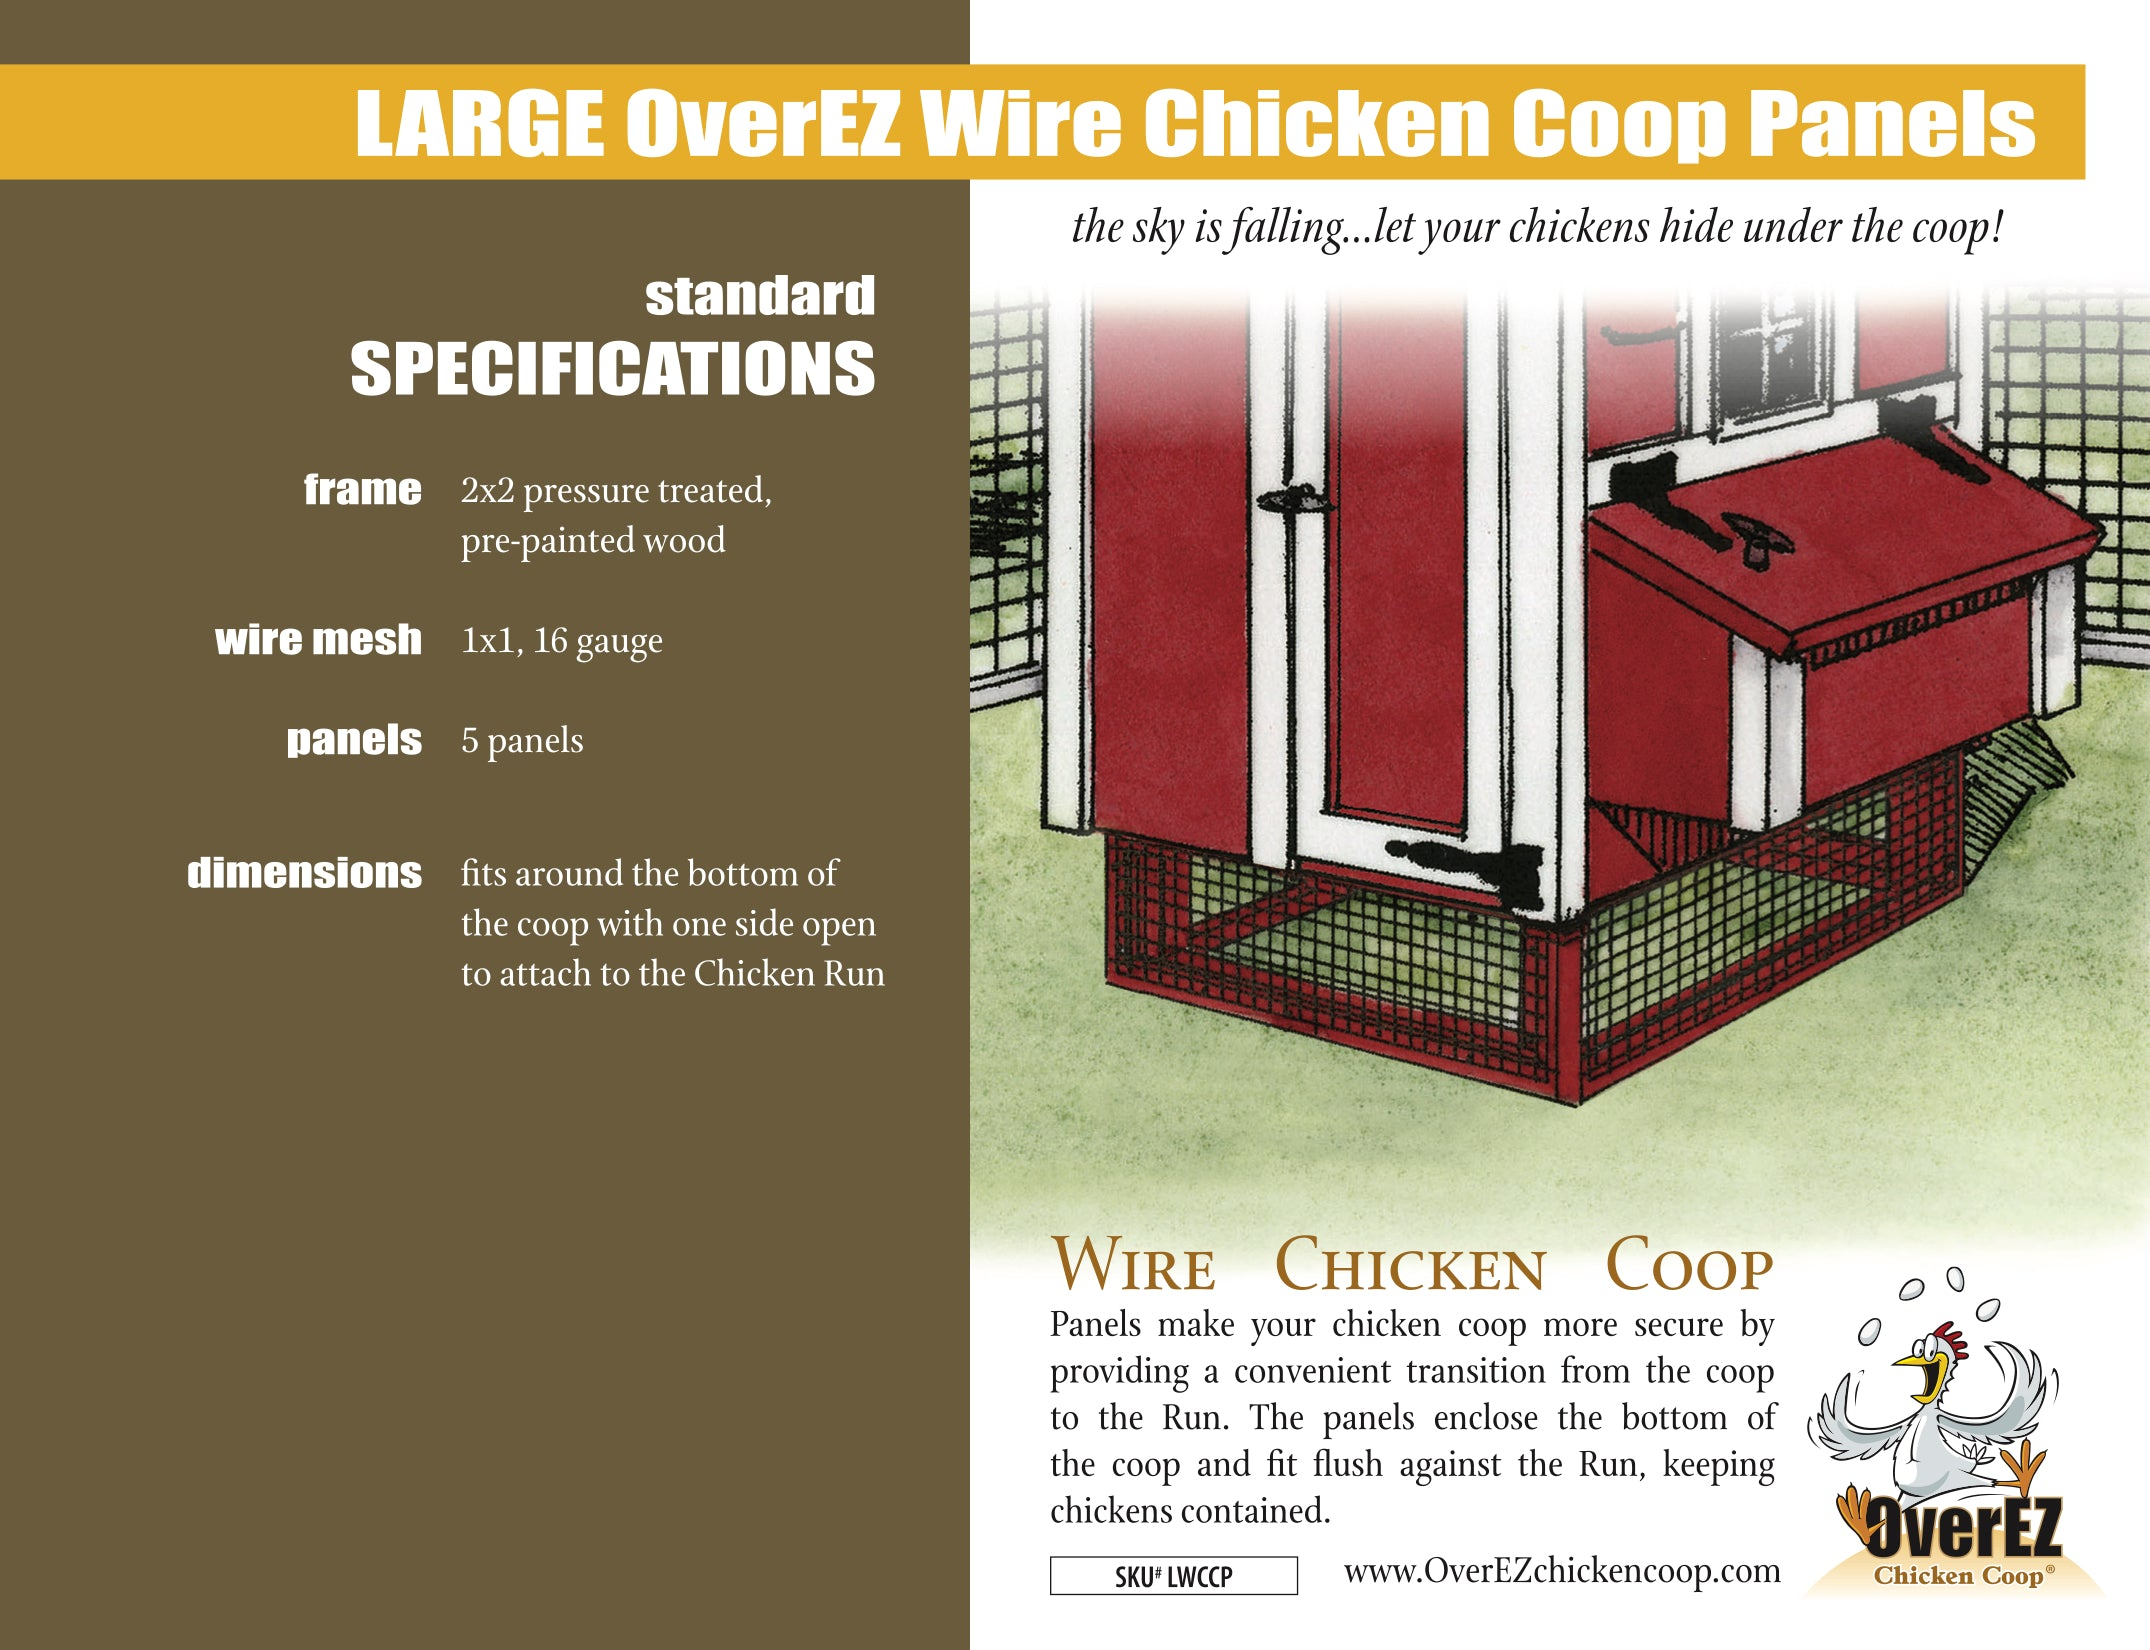 Large OverEZ Wire Chicken Coop Panels Spec Sheet